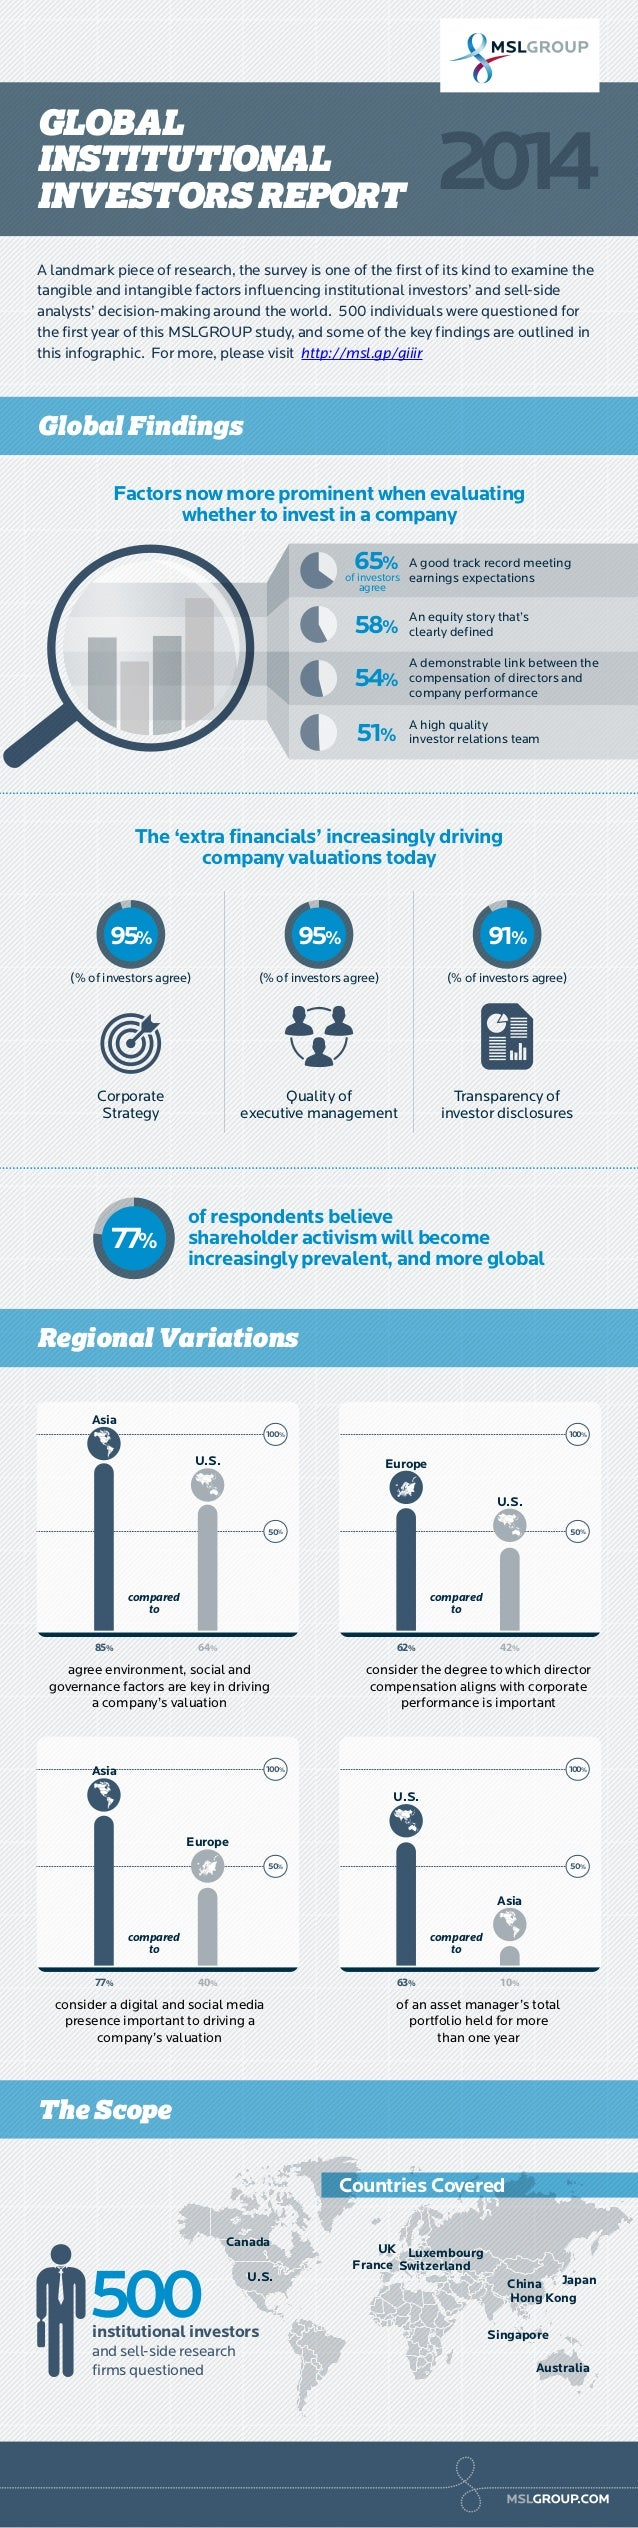 Infographic: MSLGROUP Global Institutional Investors Insight Survey